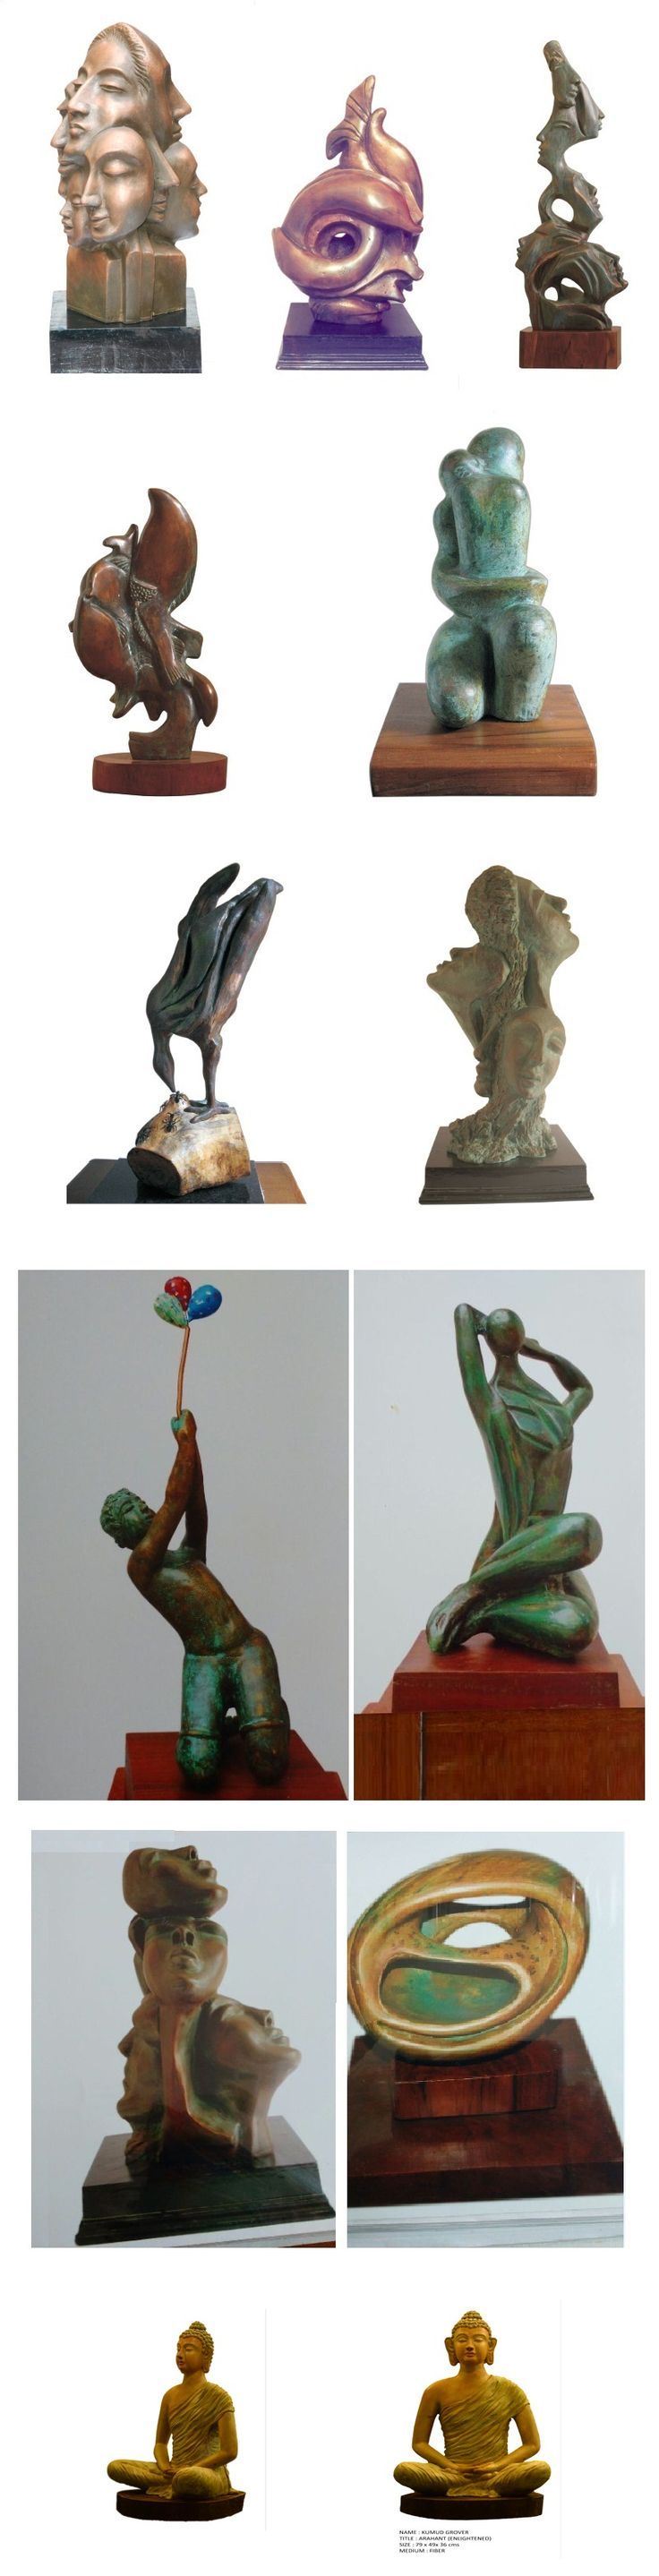 Kumud Grover – Artist Sculptor - India Sculptures - India Art Gallery -Sculpture Exhibition India –  http://indiaartgallery.in/artists/kumud-grover/